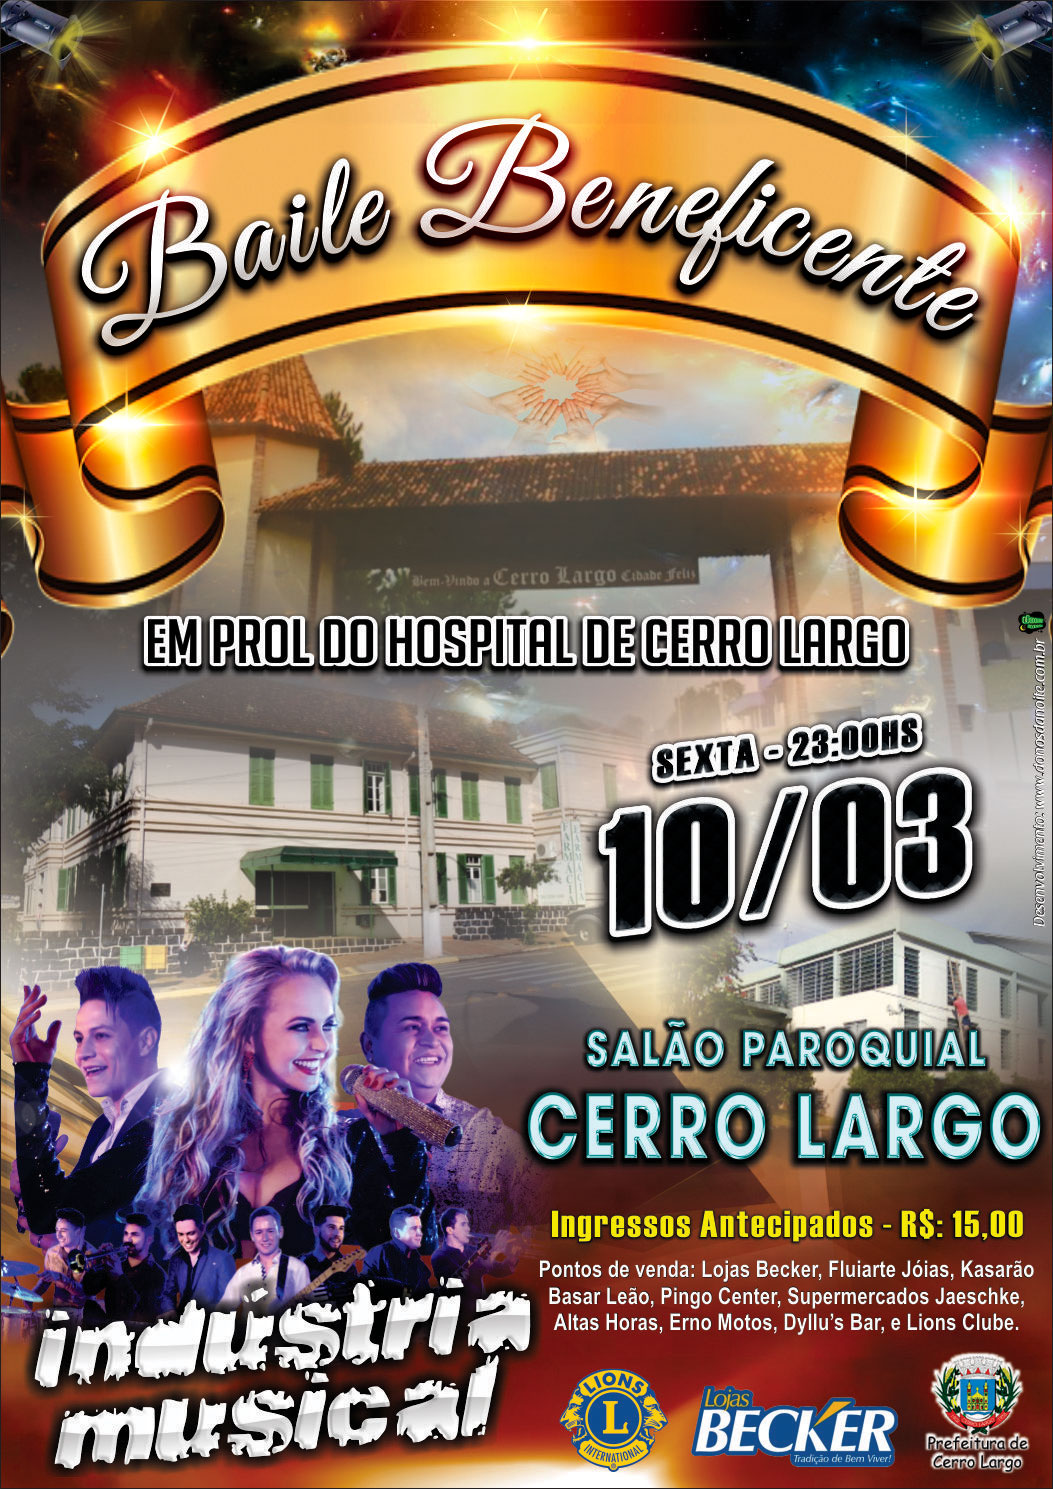 baile_beneficente_cerro_largo_10_03_17